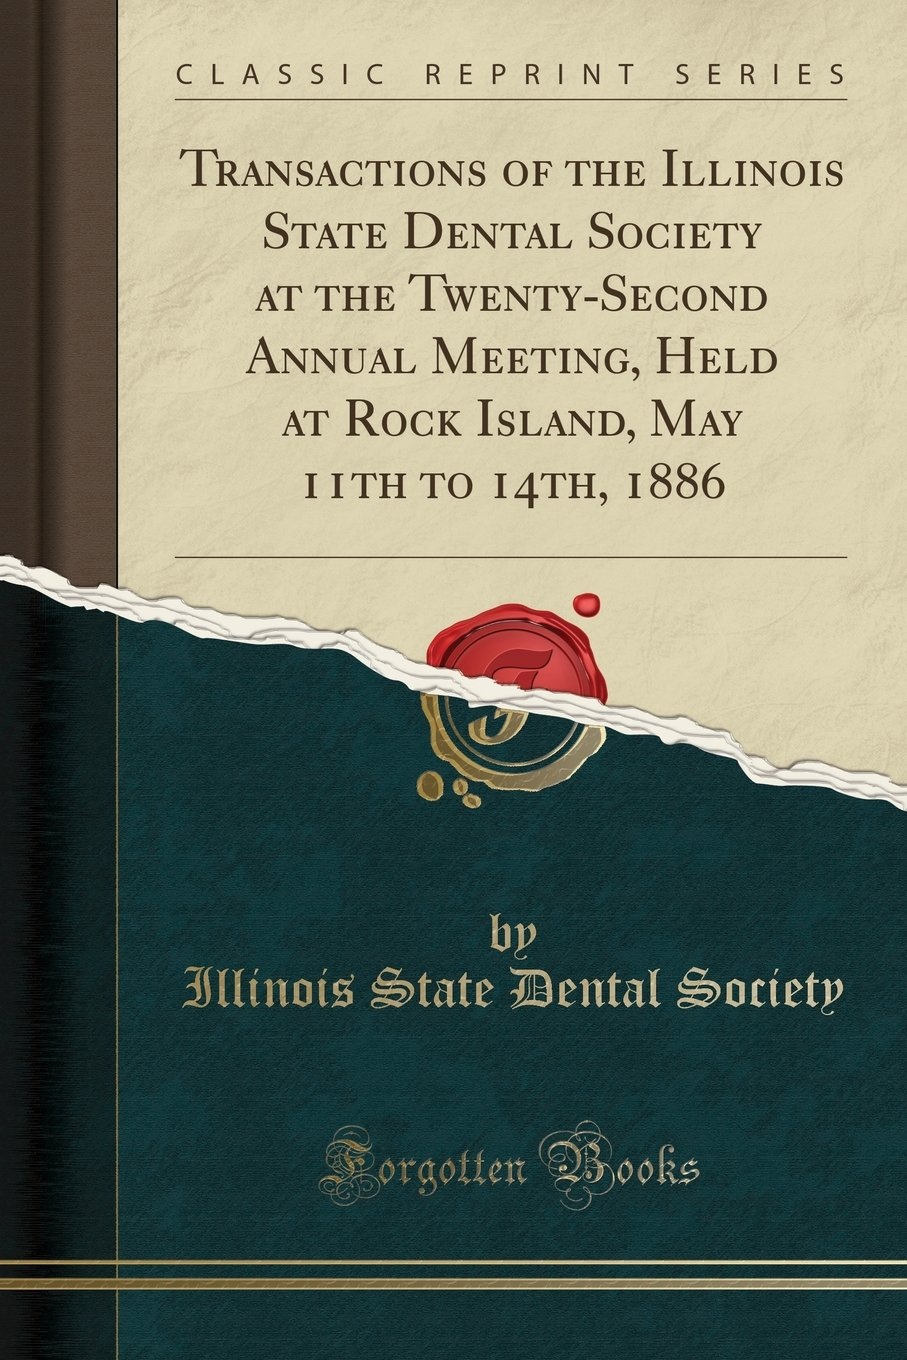 Download Transactions of the Illinois State Dental Society at the Twenty-Second Annual Meeting, Held at Rock Island, May 11th to 14th, 1886 (Classic Reprint) pdf